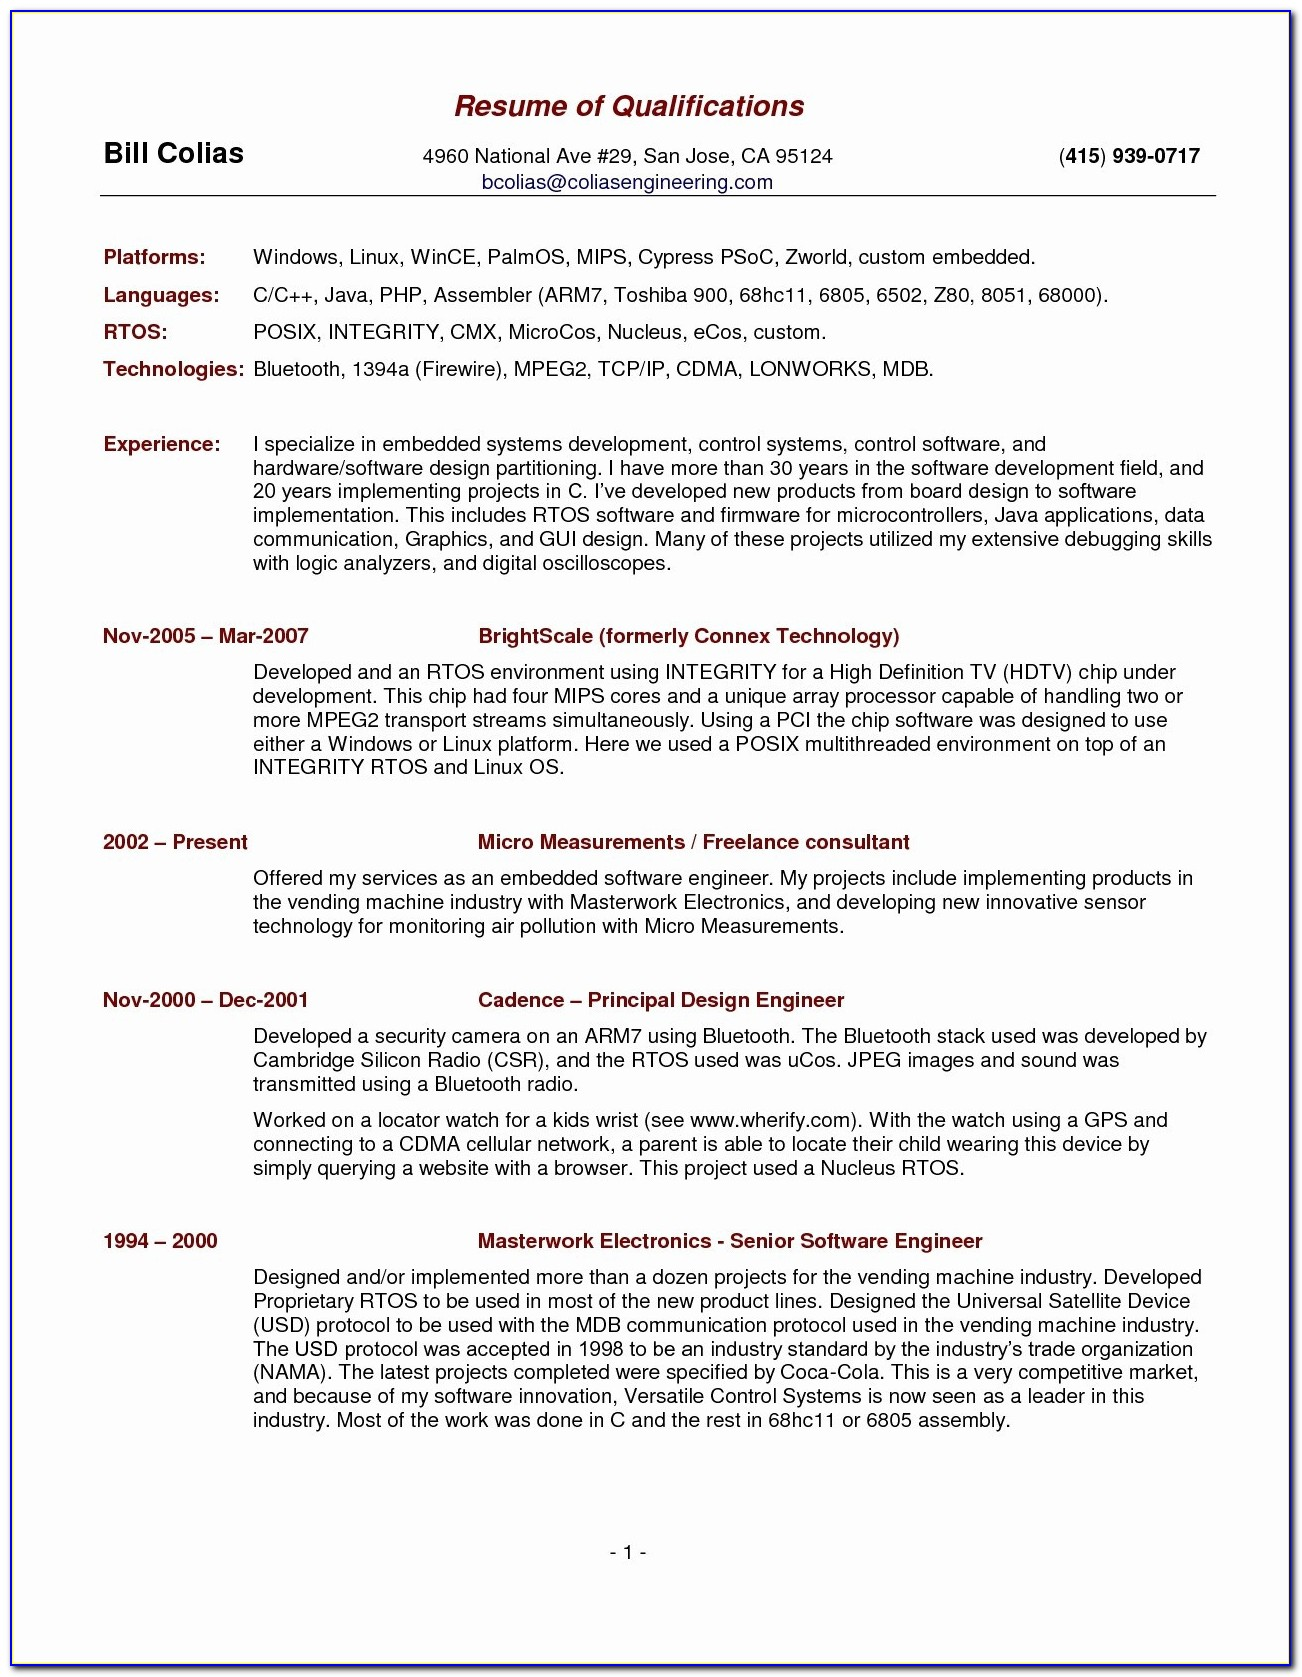 Cute Resume Templates Best Of 55 Cute Resume Templates Free Download